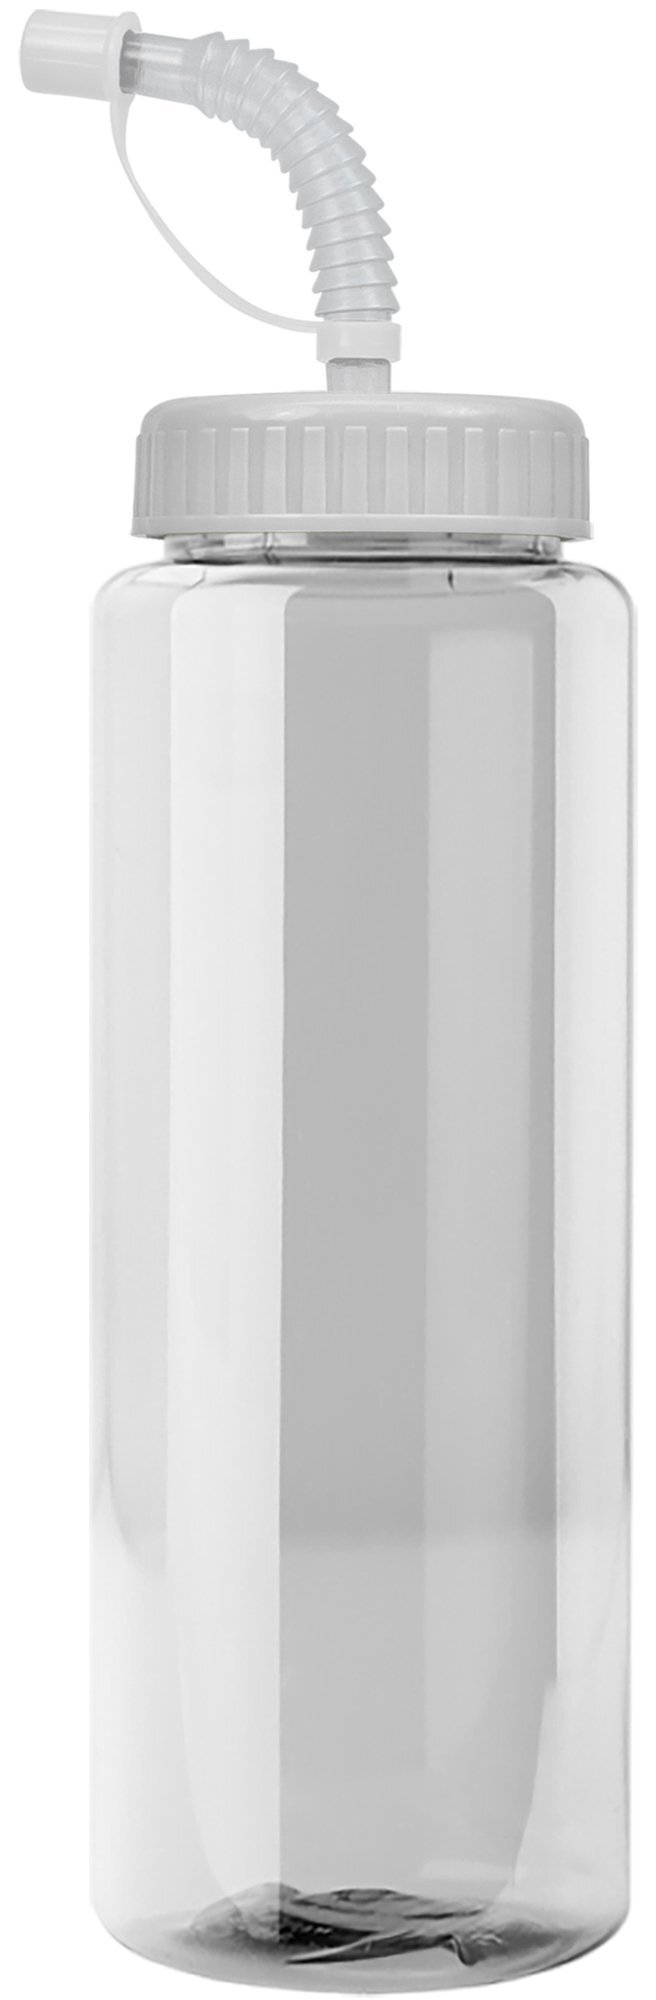 Guzzler Transparent Sport Bottle, 32oz. - Straw Lid